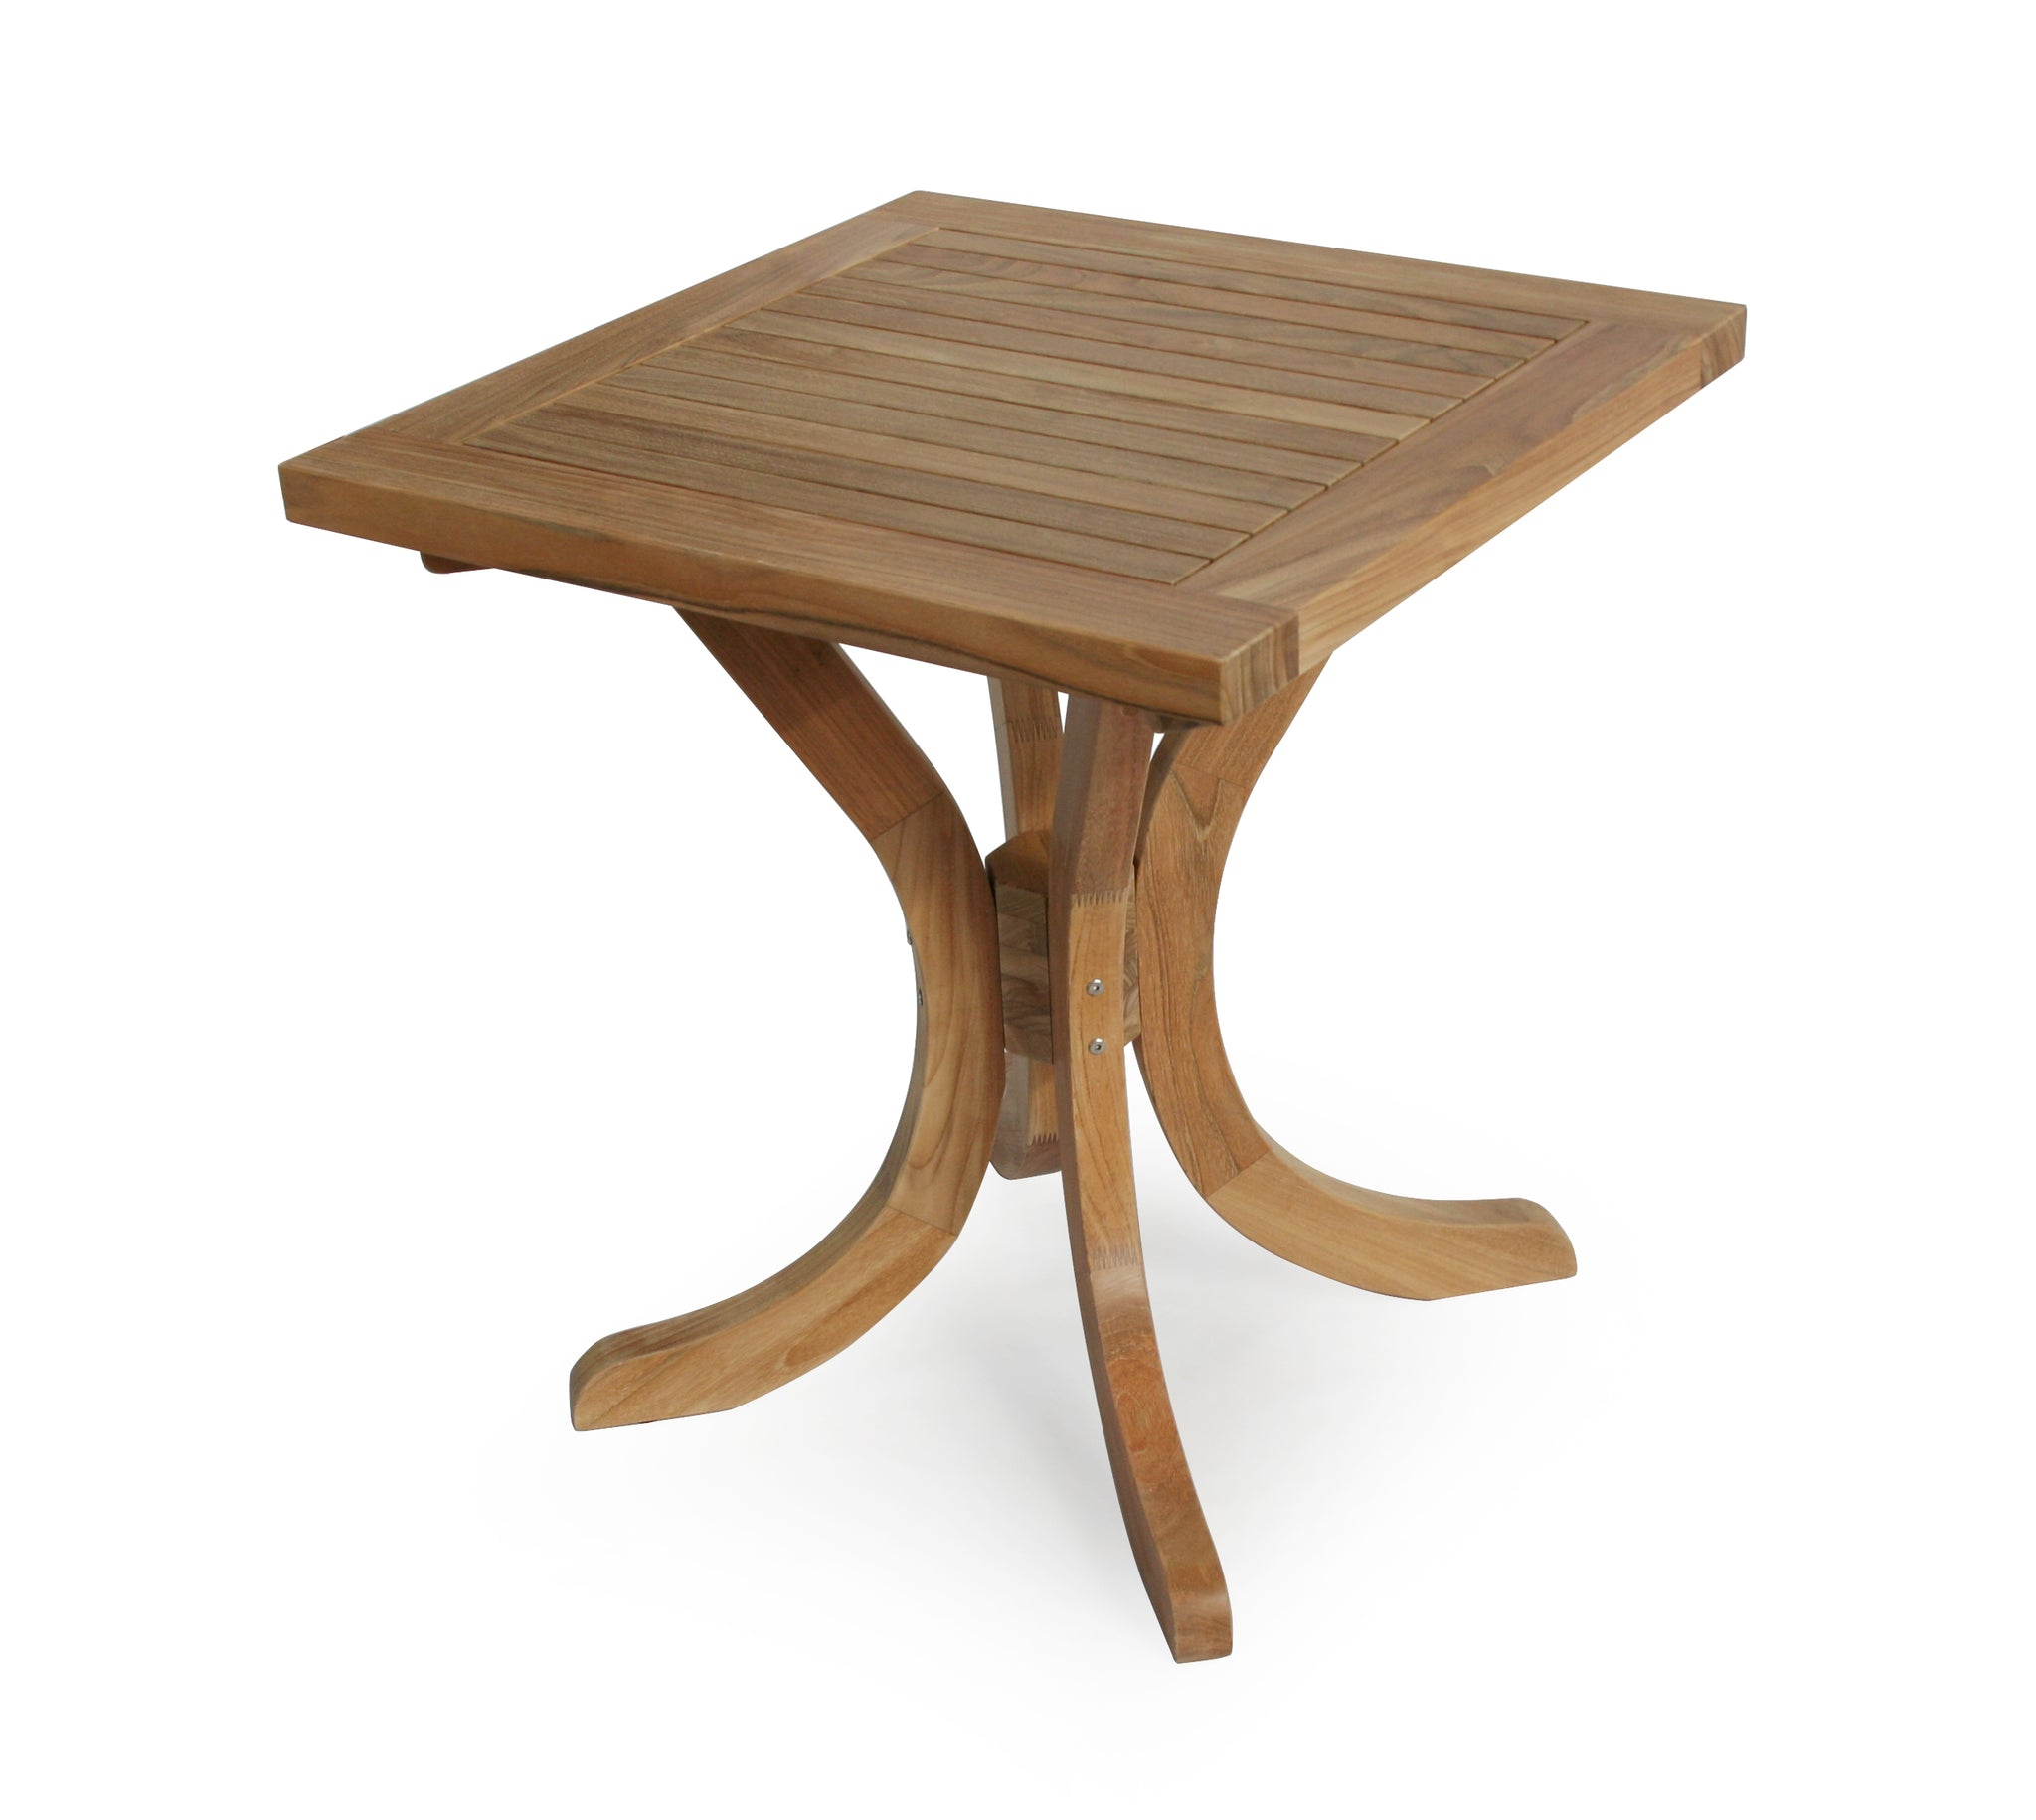 Garden Teak Square Pedestal Table 70cm (2 Seater)